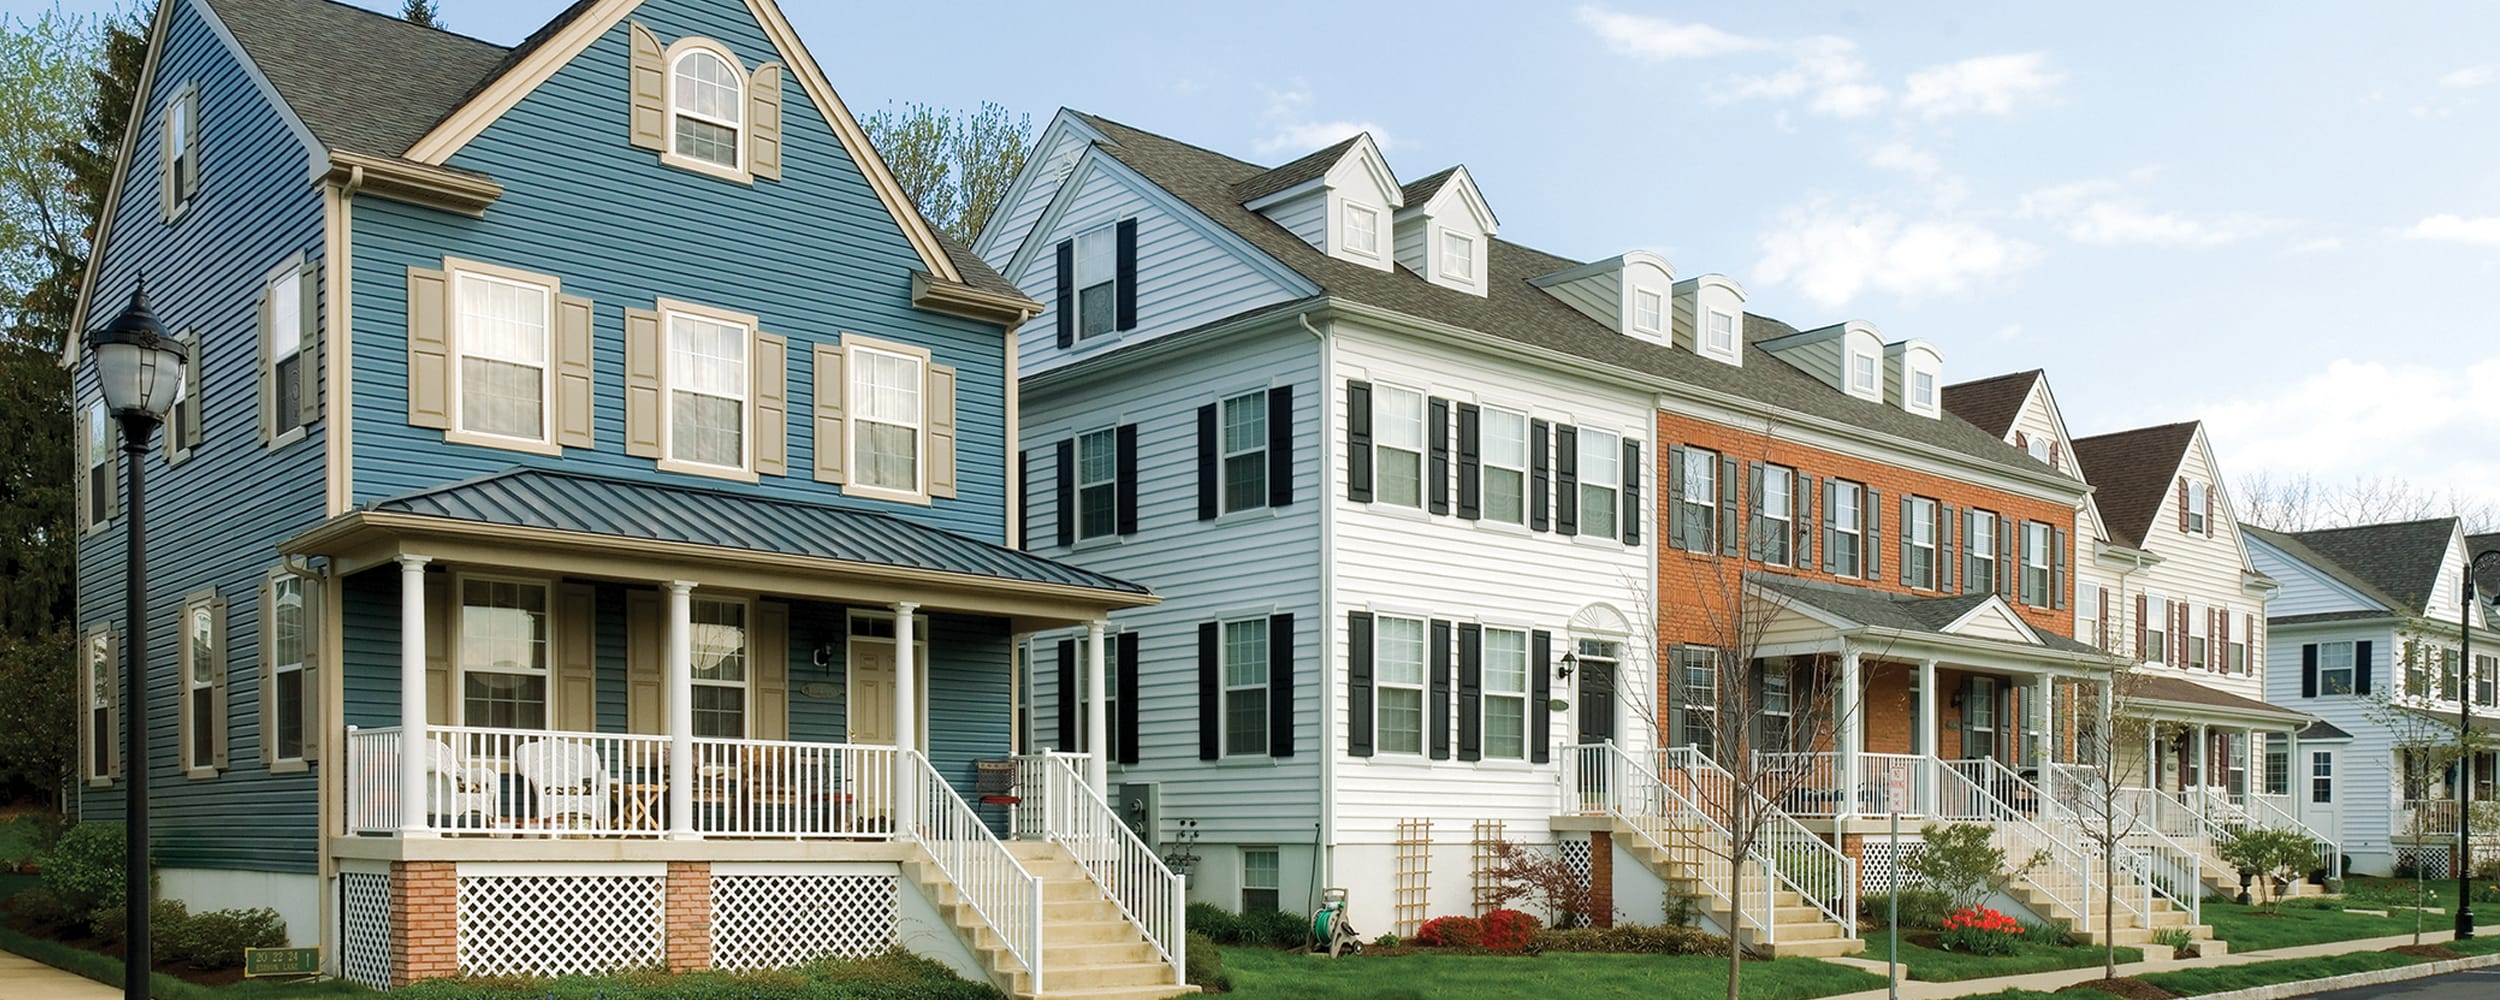 Vinyl Siding Cost Comparison Vinyl Siding Institute Vsi